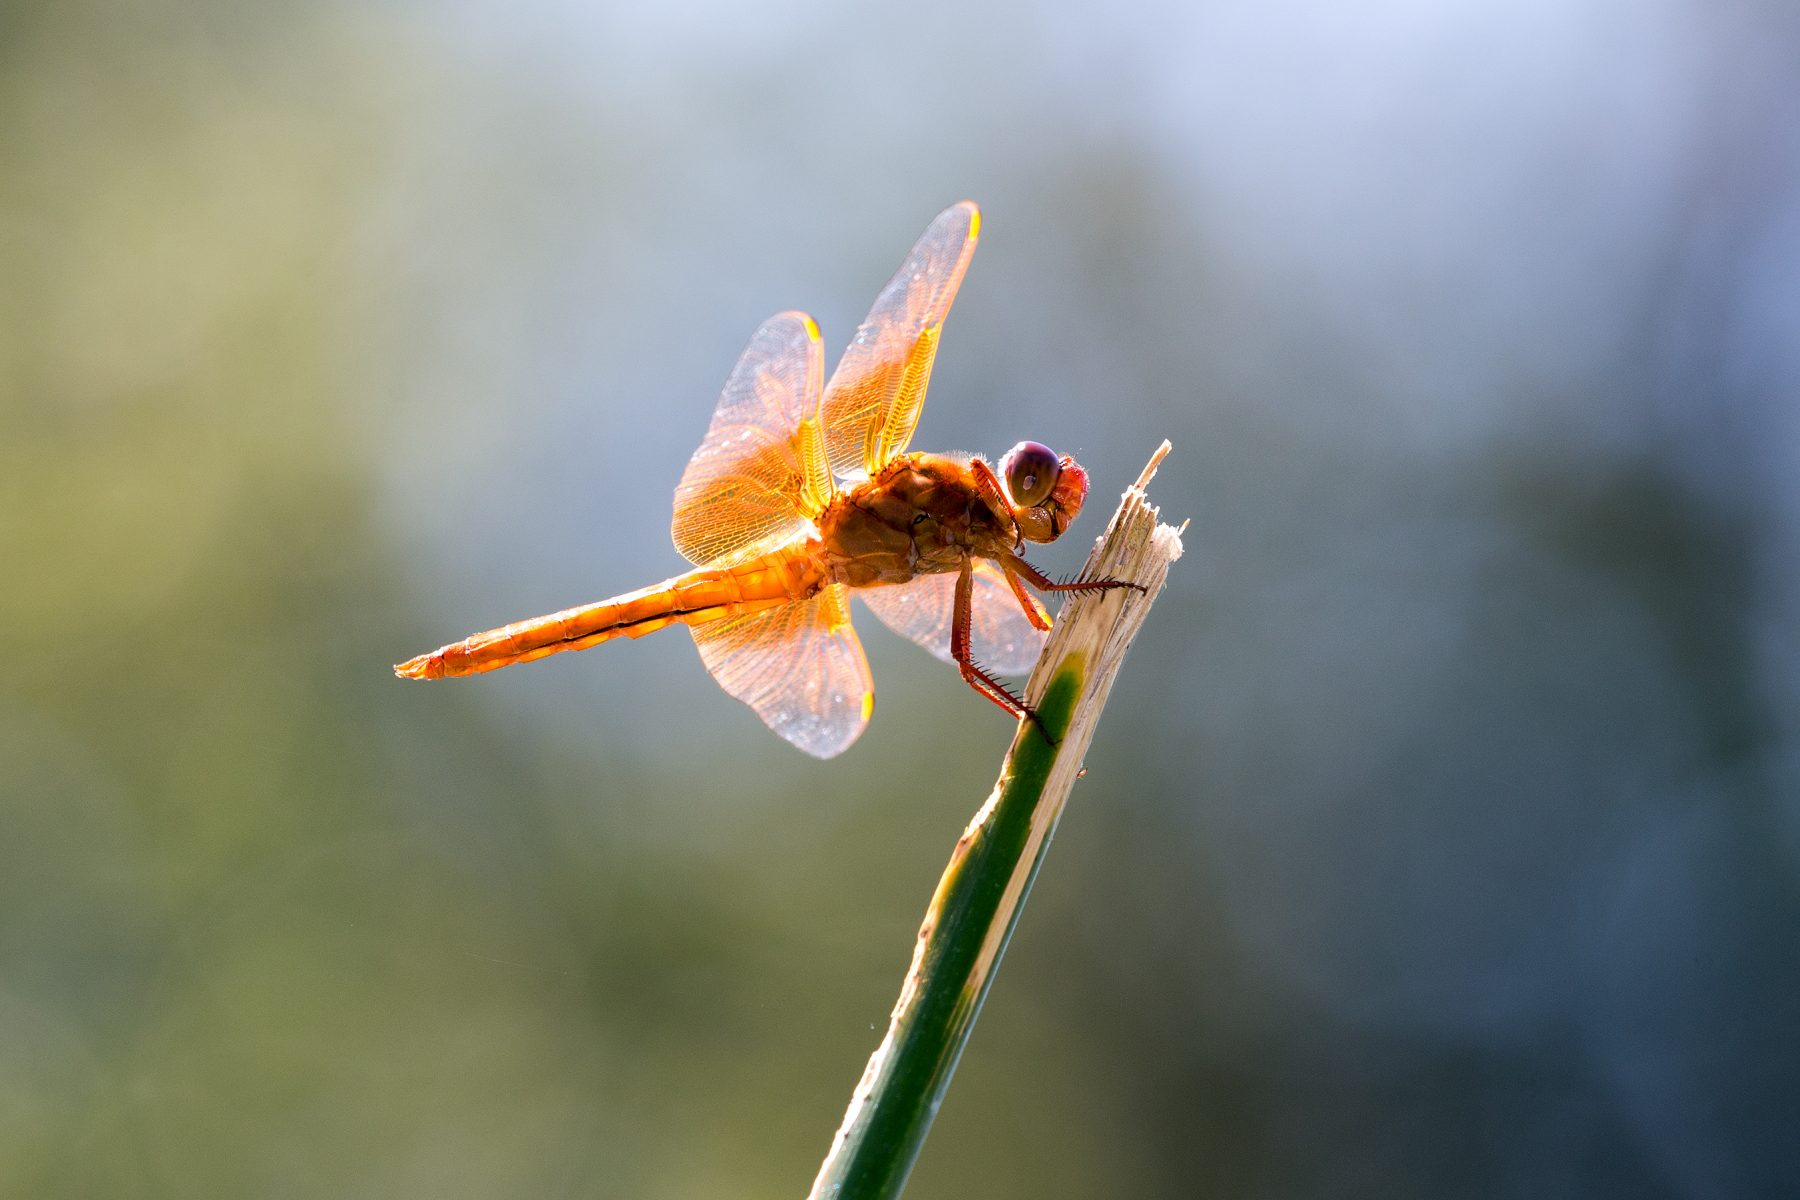 Dragonfly by Tom Applegate